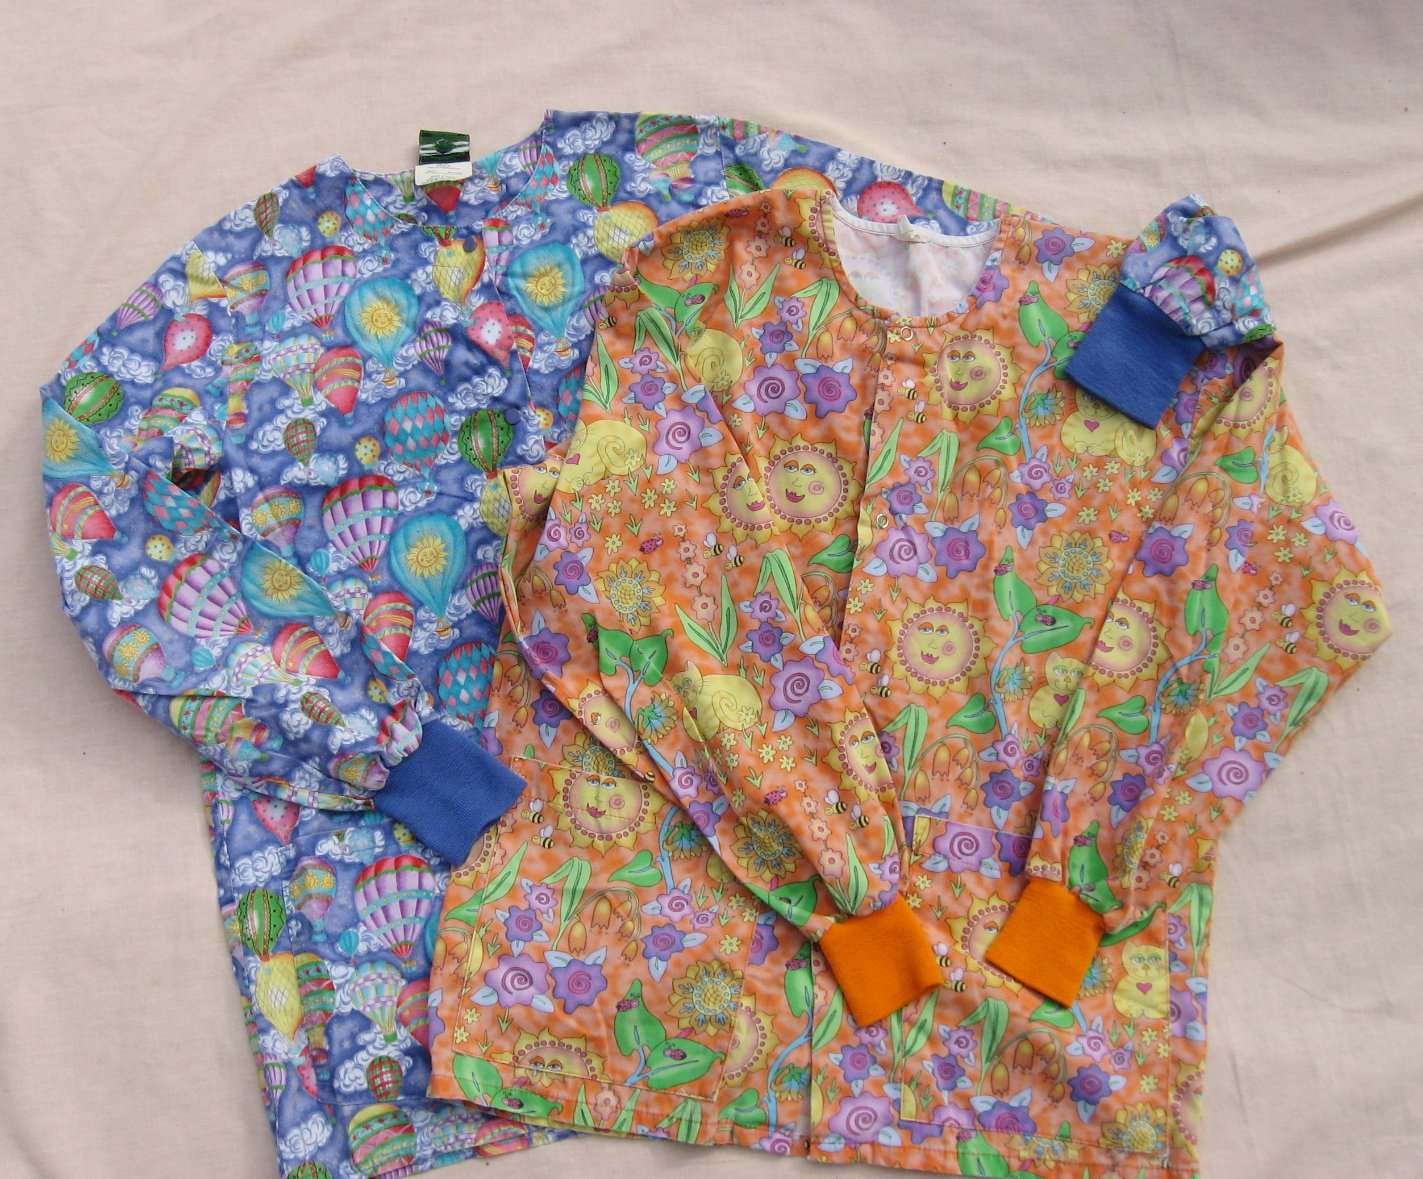 2 Scrub Tops S 42 Chest Blue Orange Prints Long sleeve